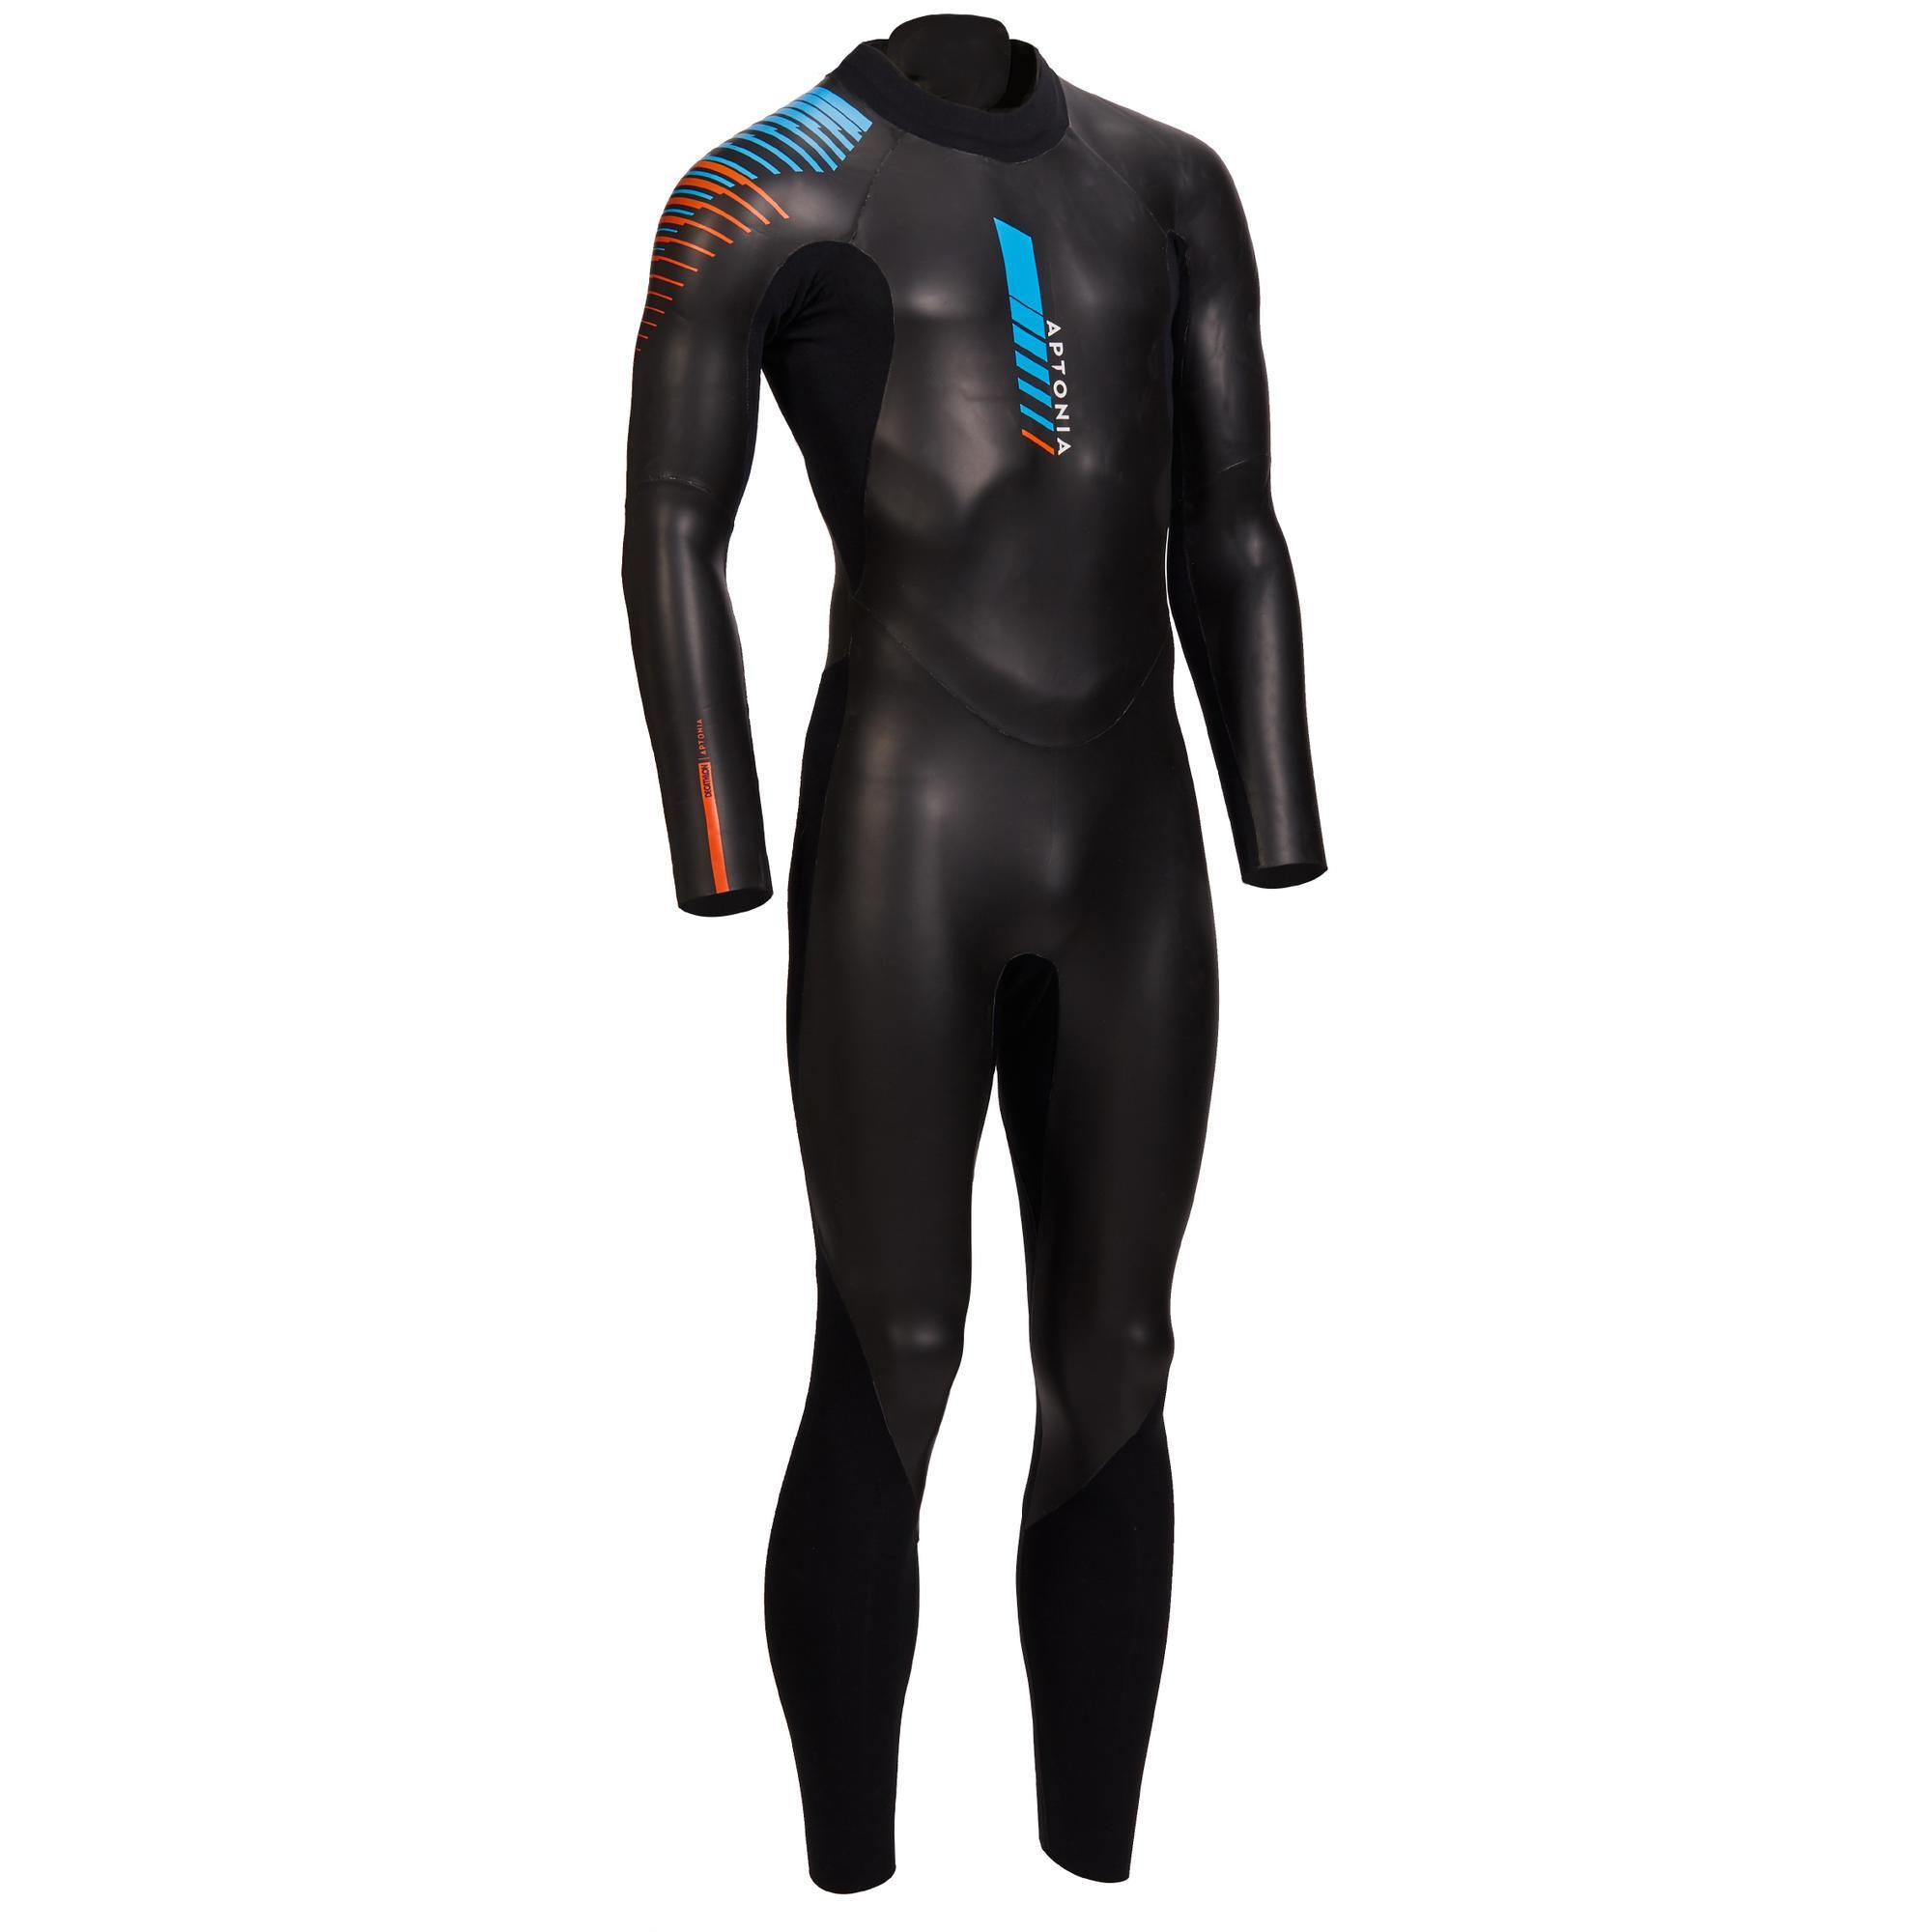 Aptonia Neopreen herenwetsuit voor triatlon SD Aptonia